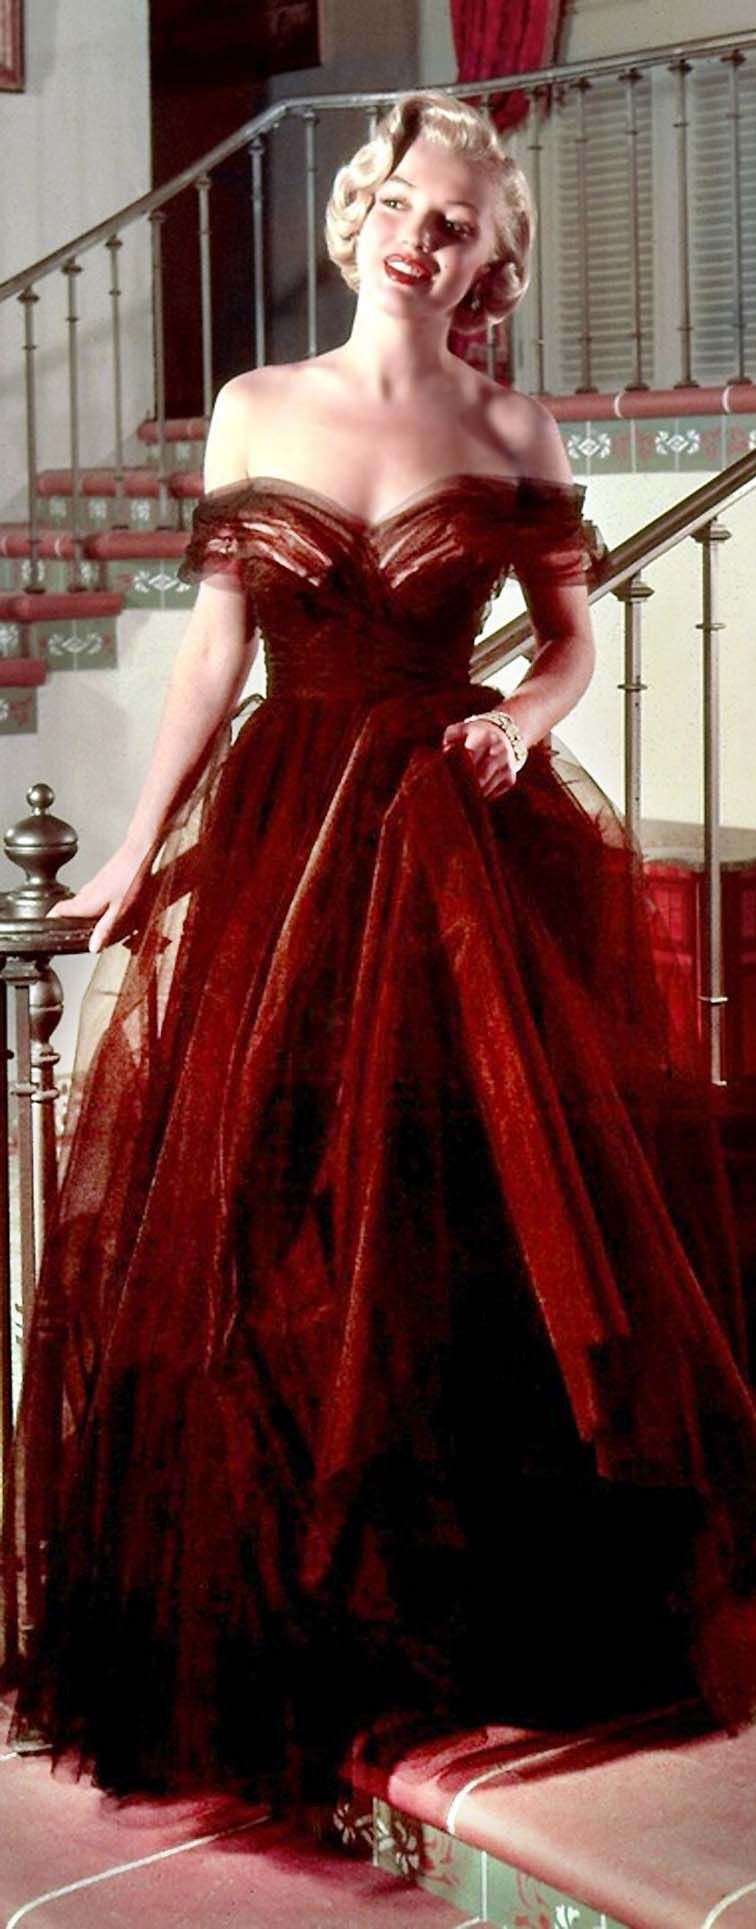 Marilyn monroe in a stunning red dress find your elegant outfits at